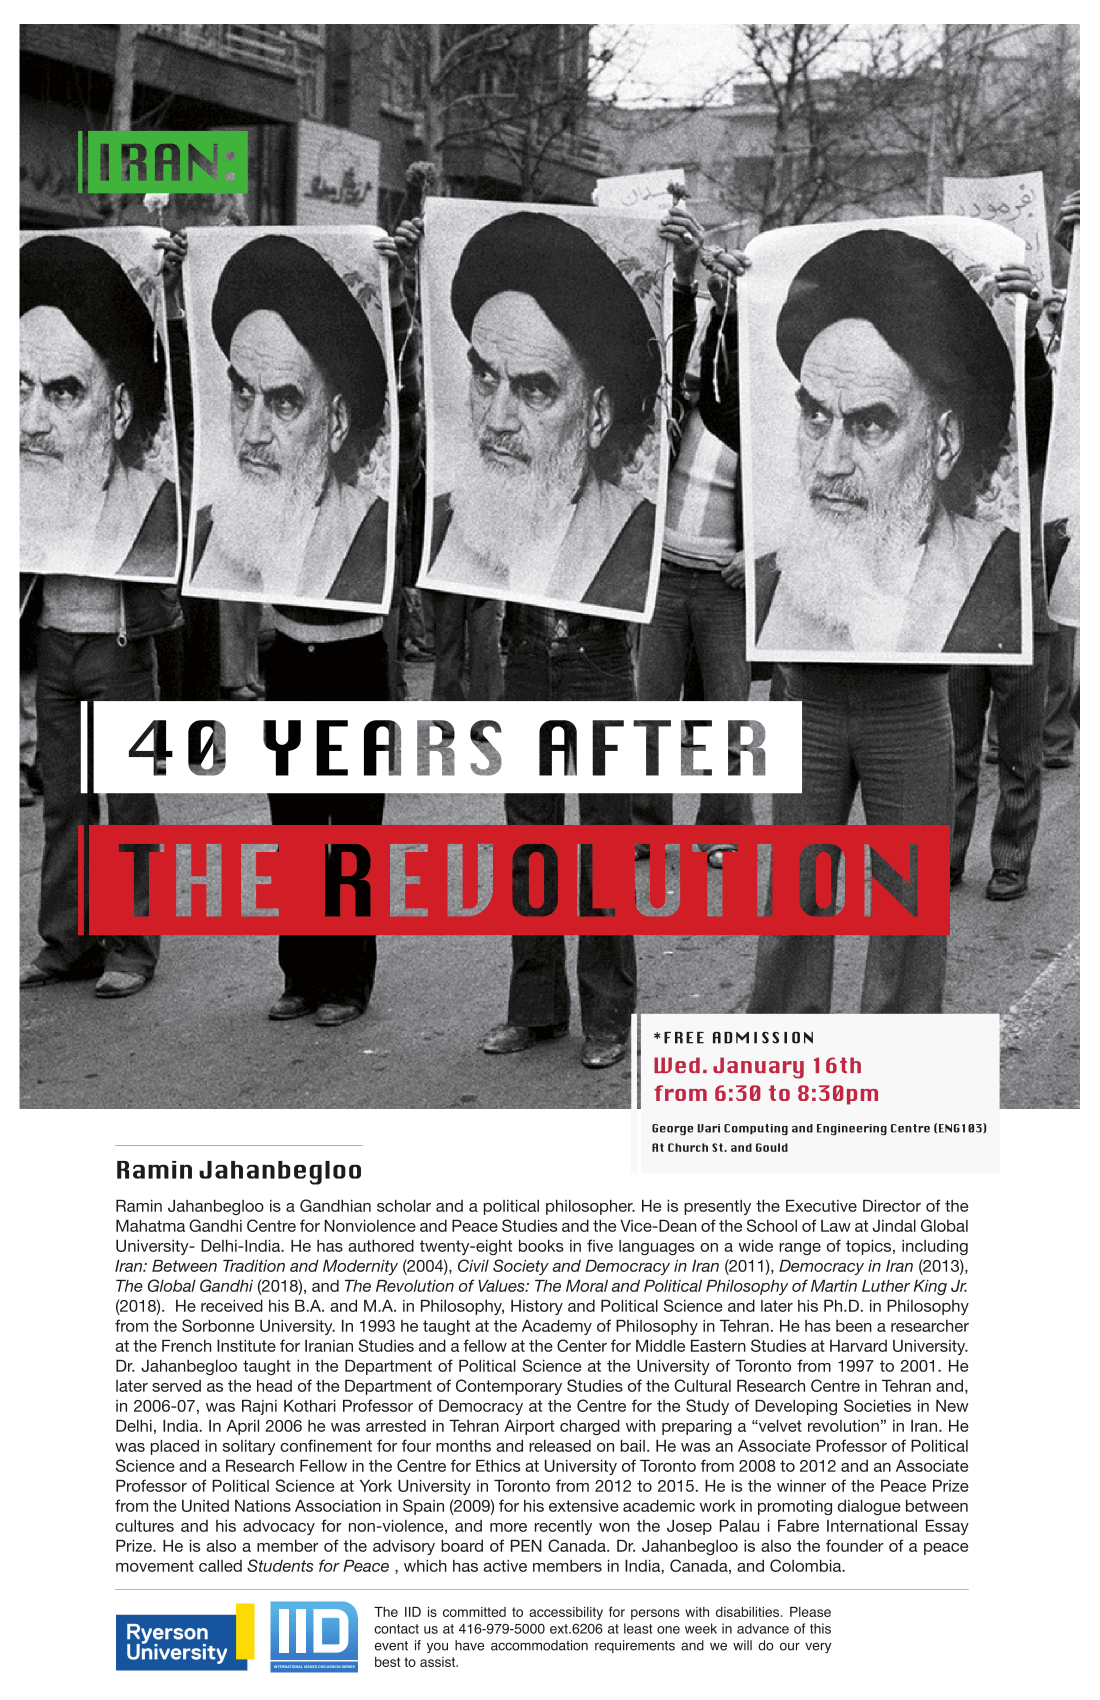 Iran: 40 Years After the Revolution – Wednesday, January 16, 2019.